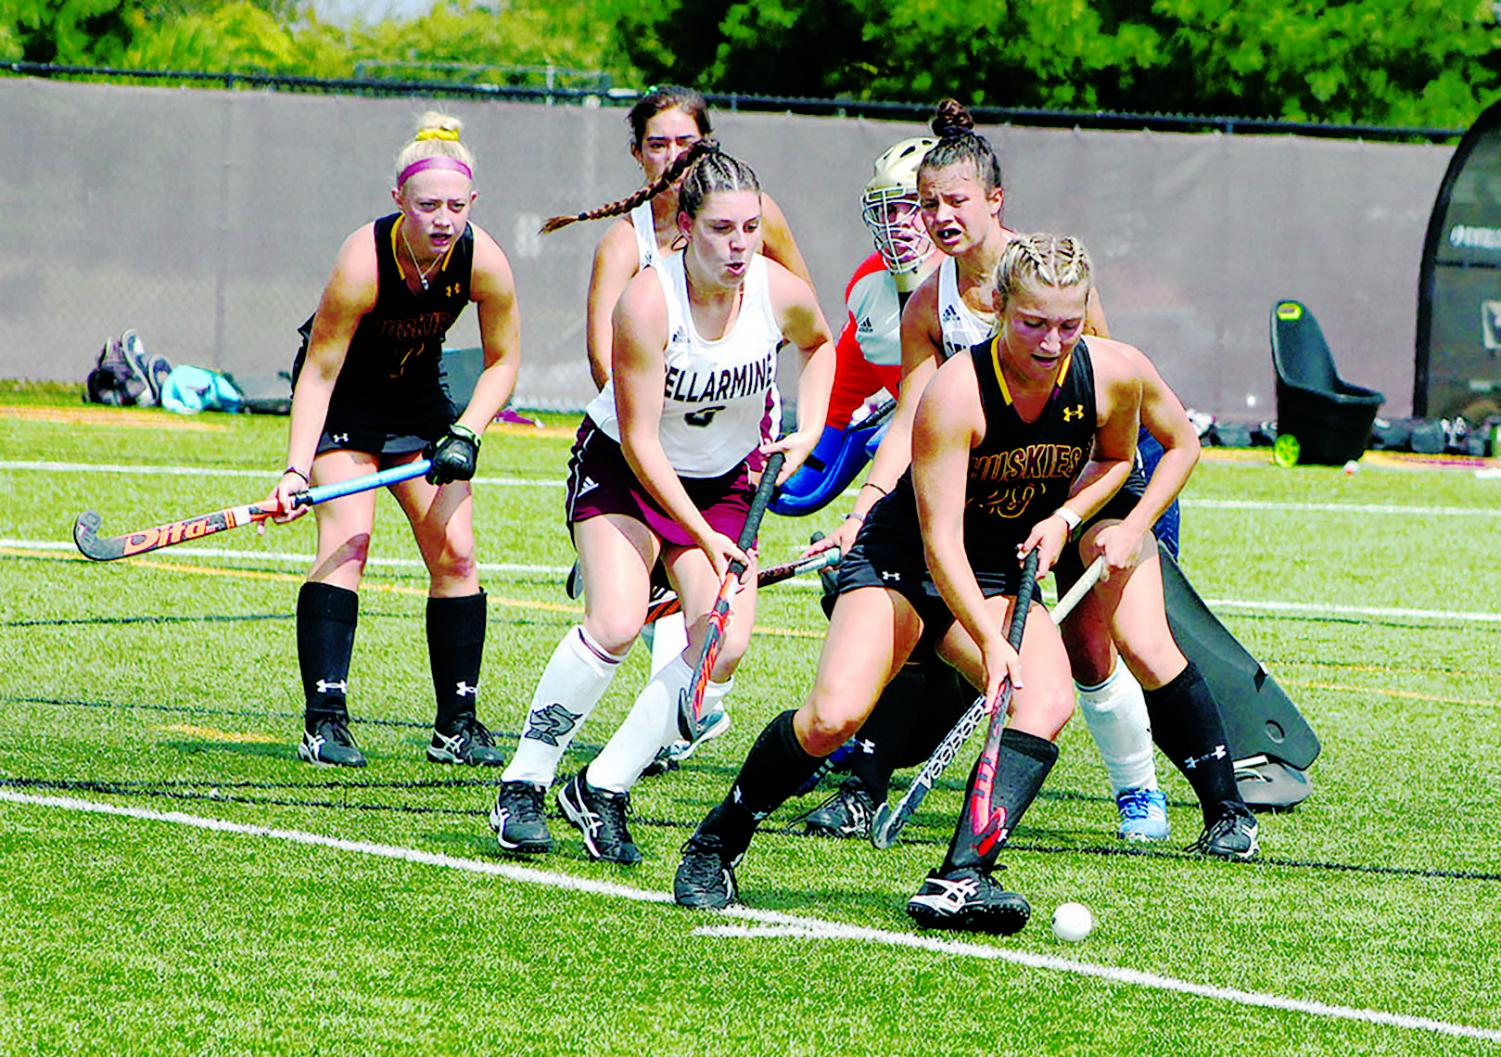 The+Bloomsburg+University++field+hockey+team+is+now+0-2+after+two+opening+losses+to+start+the+2019+season.